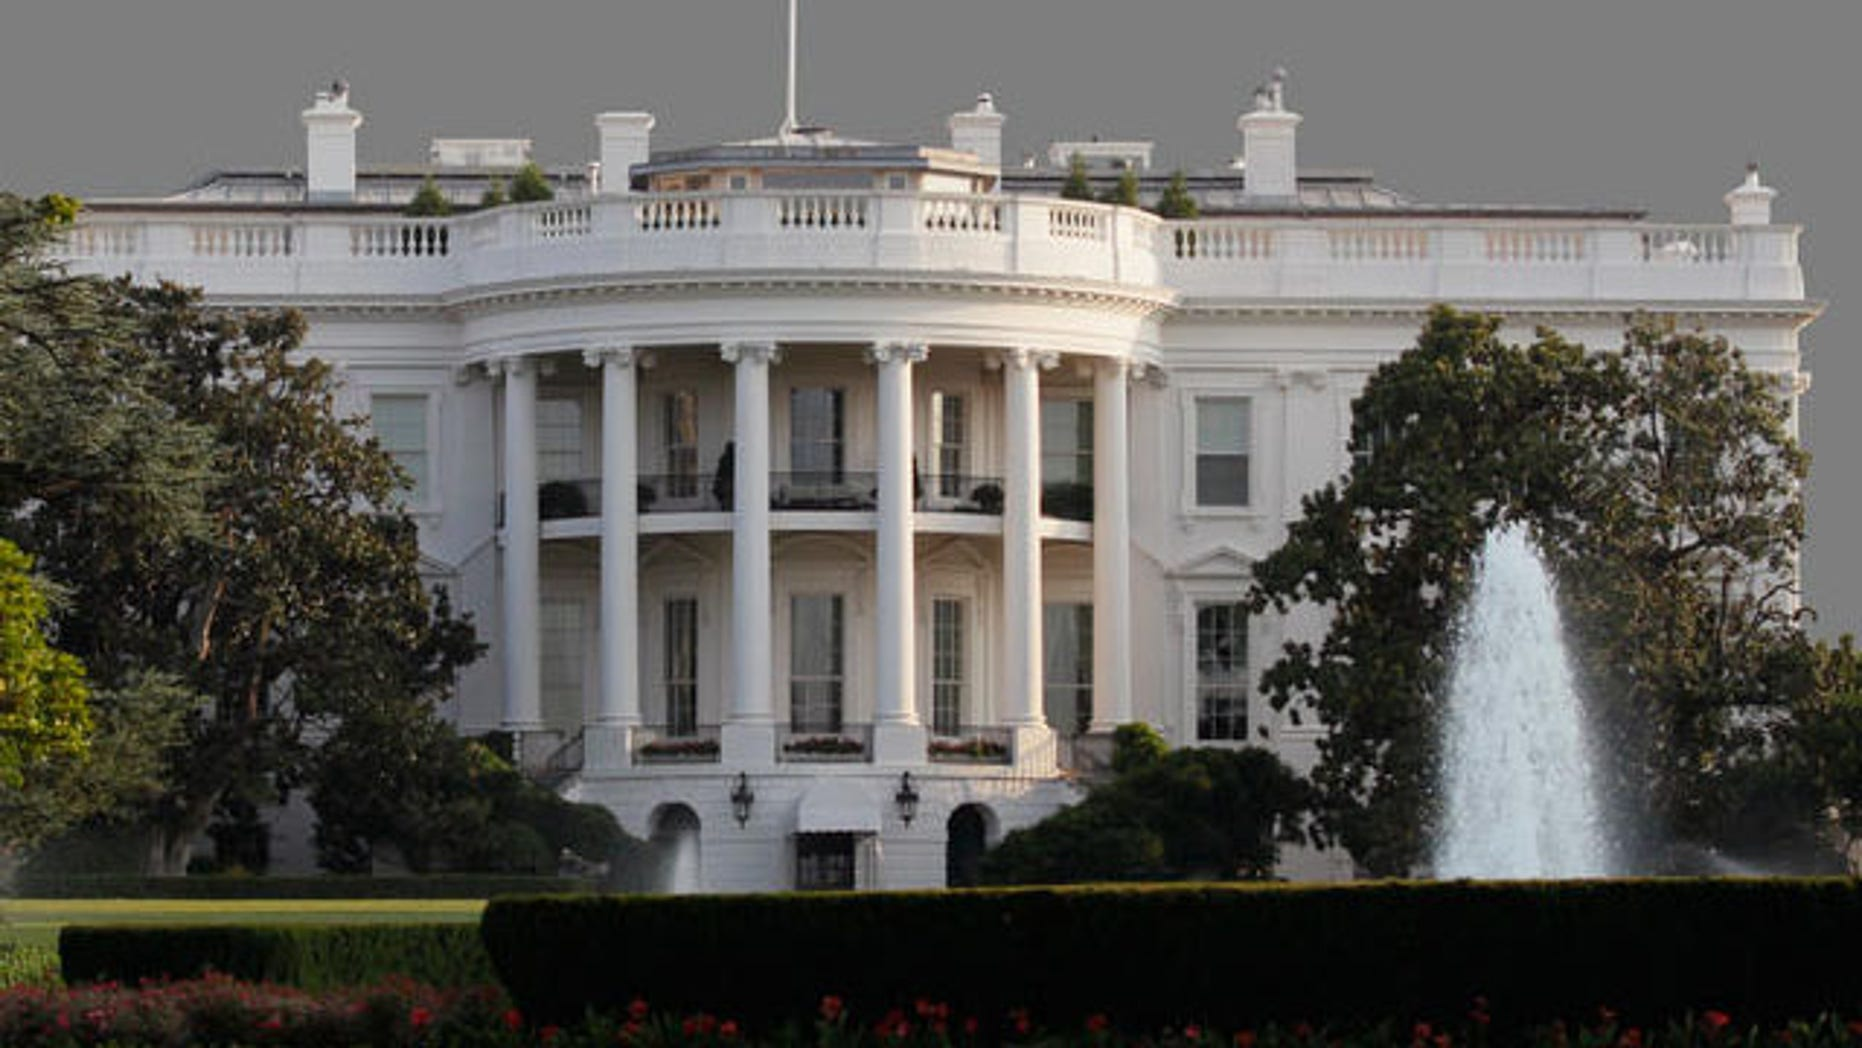 The White House is shown in this July 31, 2011 graphic.